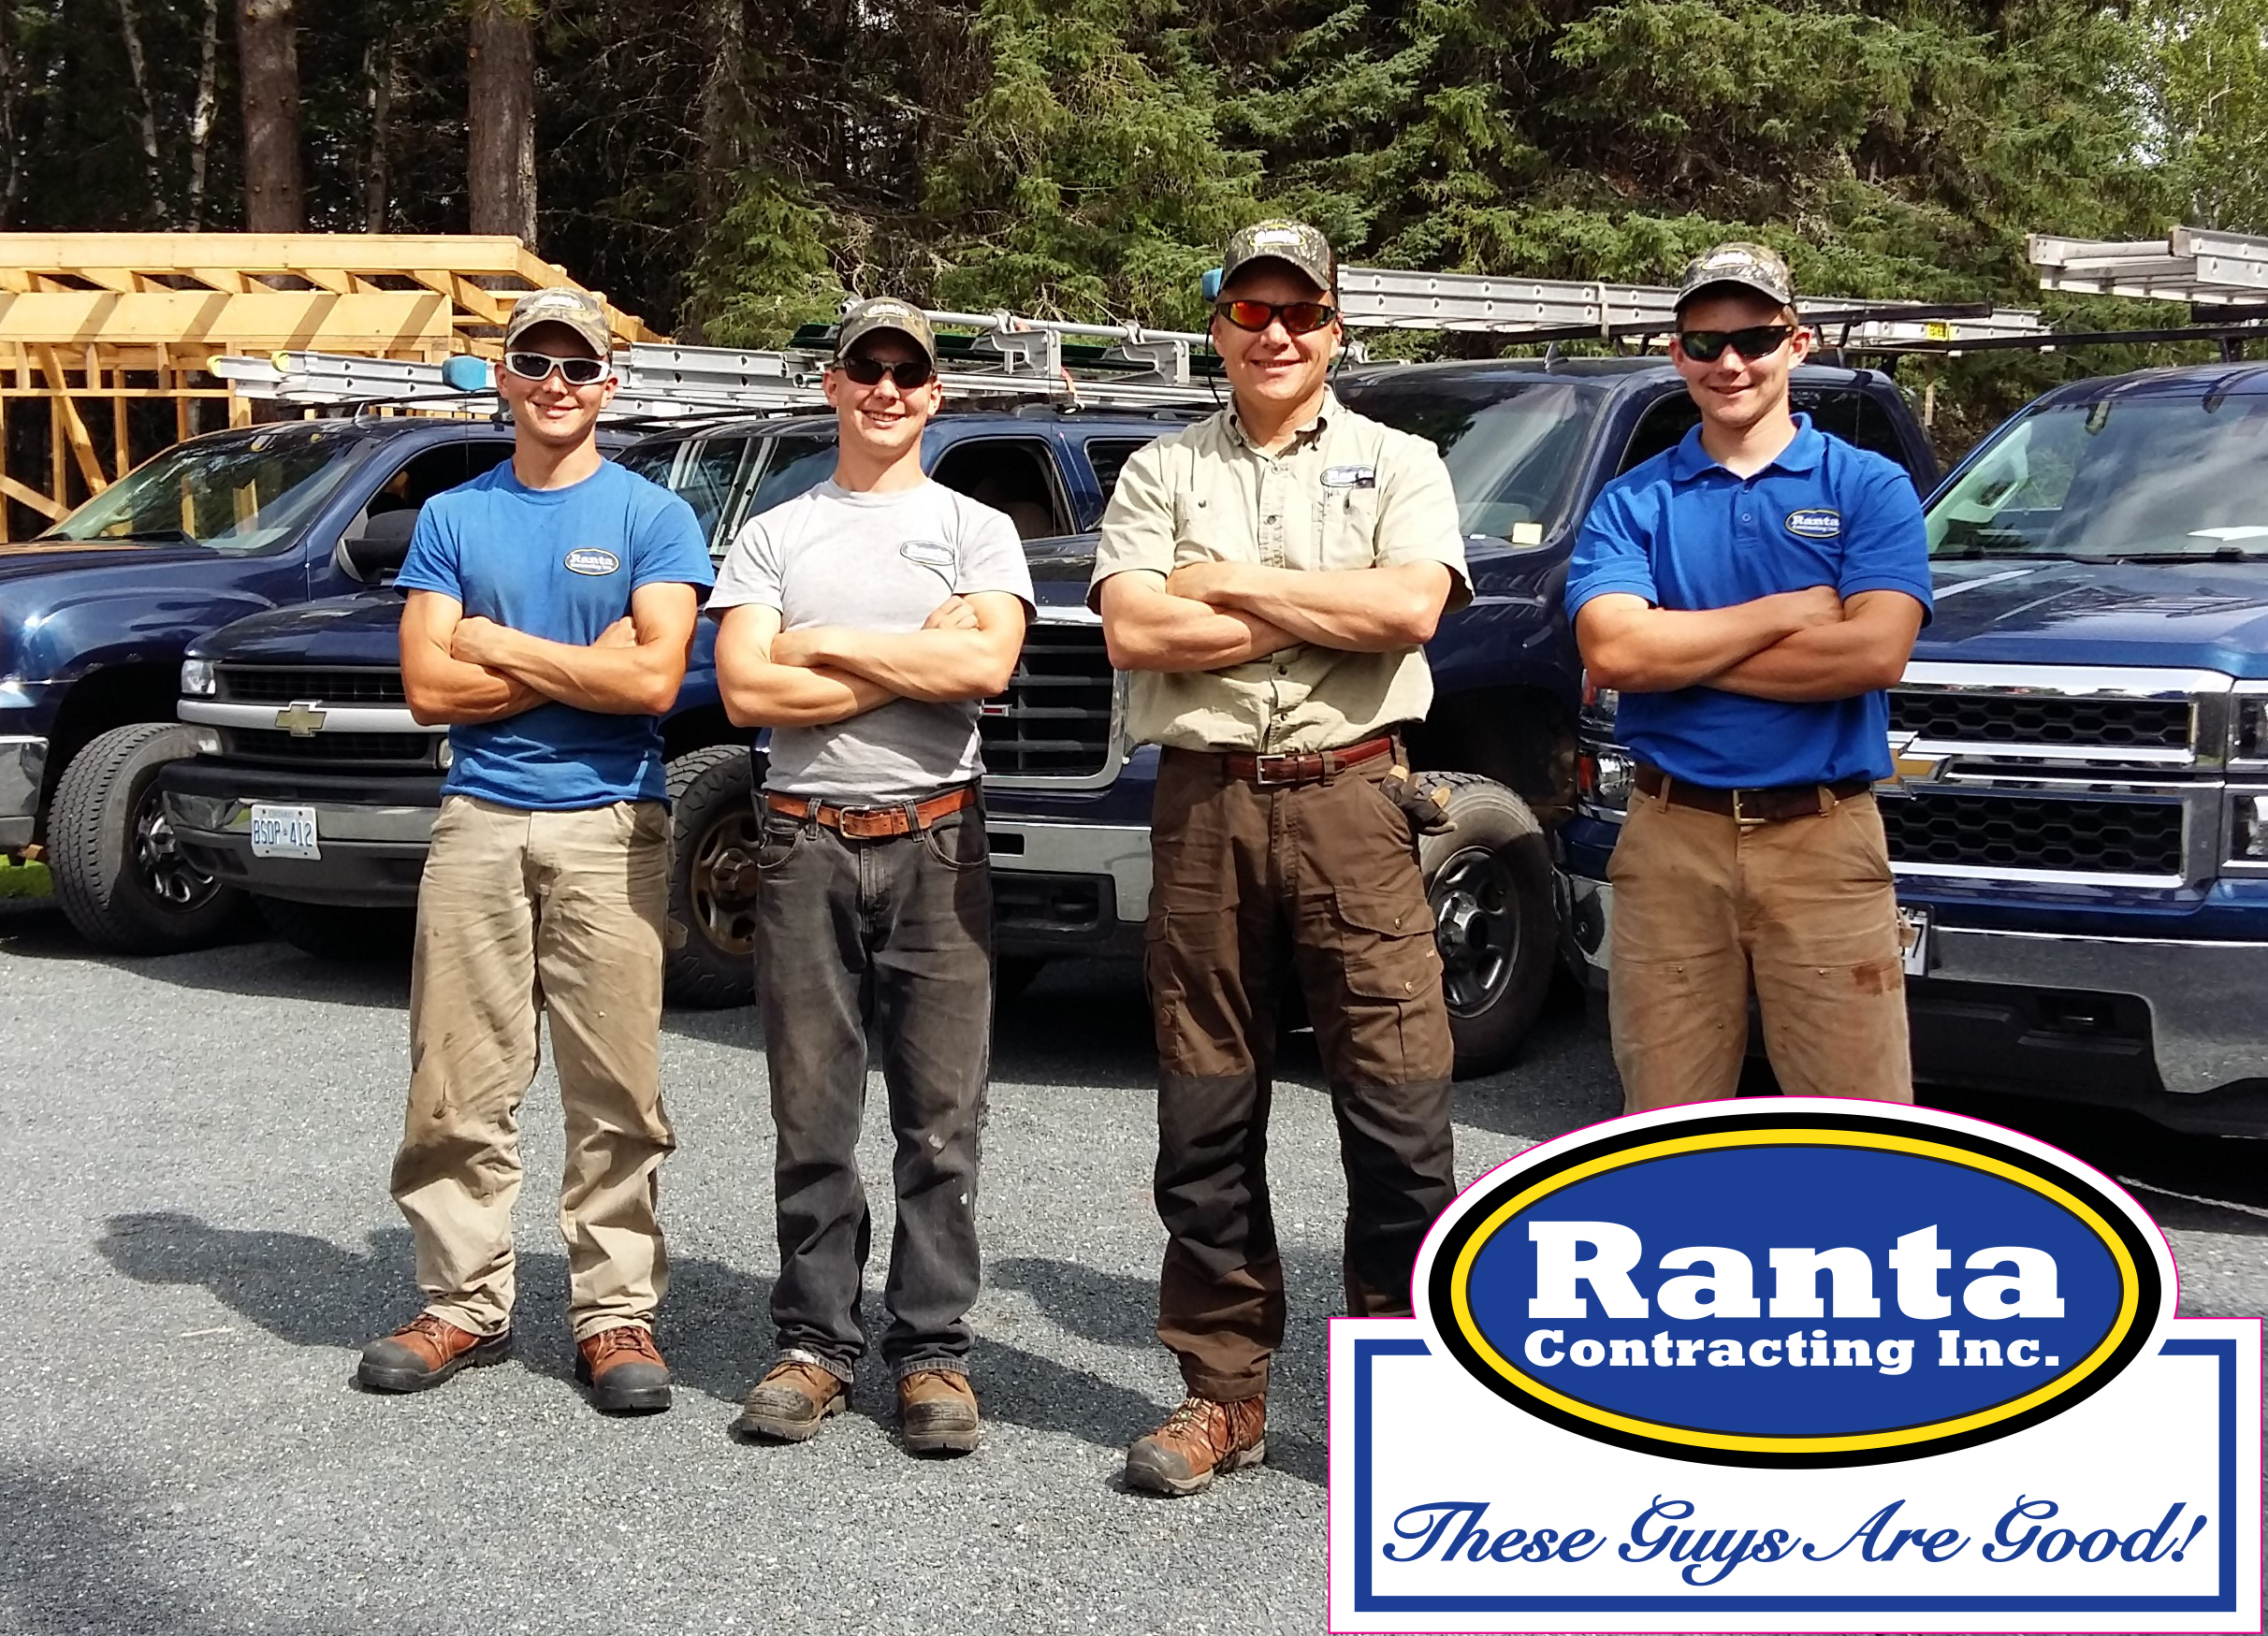 Ranta Contracting Inc.   3143 Dog Lake Road  Gorham Ontario  P7G OC3   John Ranta (807) 631-2346     Kyle Ranta (807)620-2961   email  rantacontracting@gmail.com   website  rantacontracting.ca